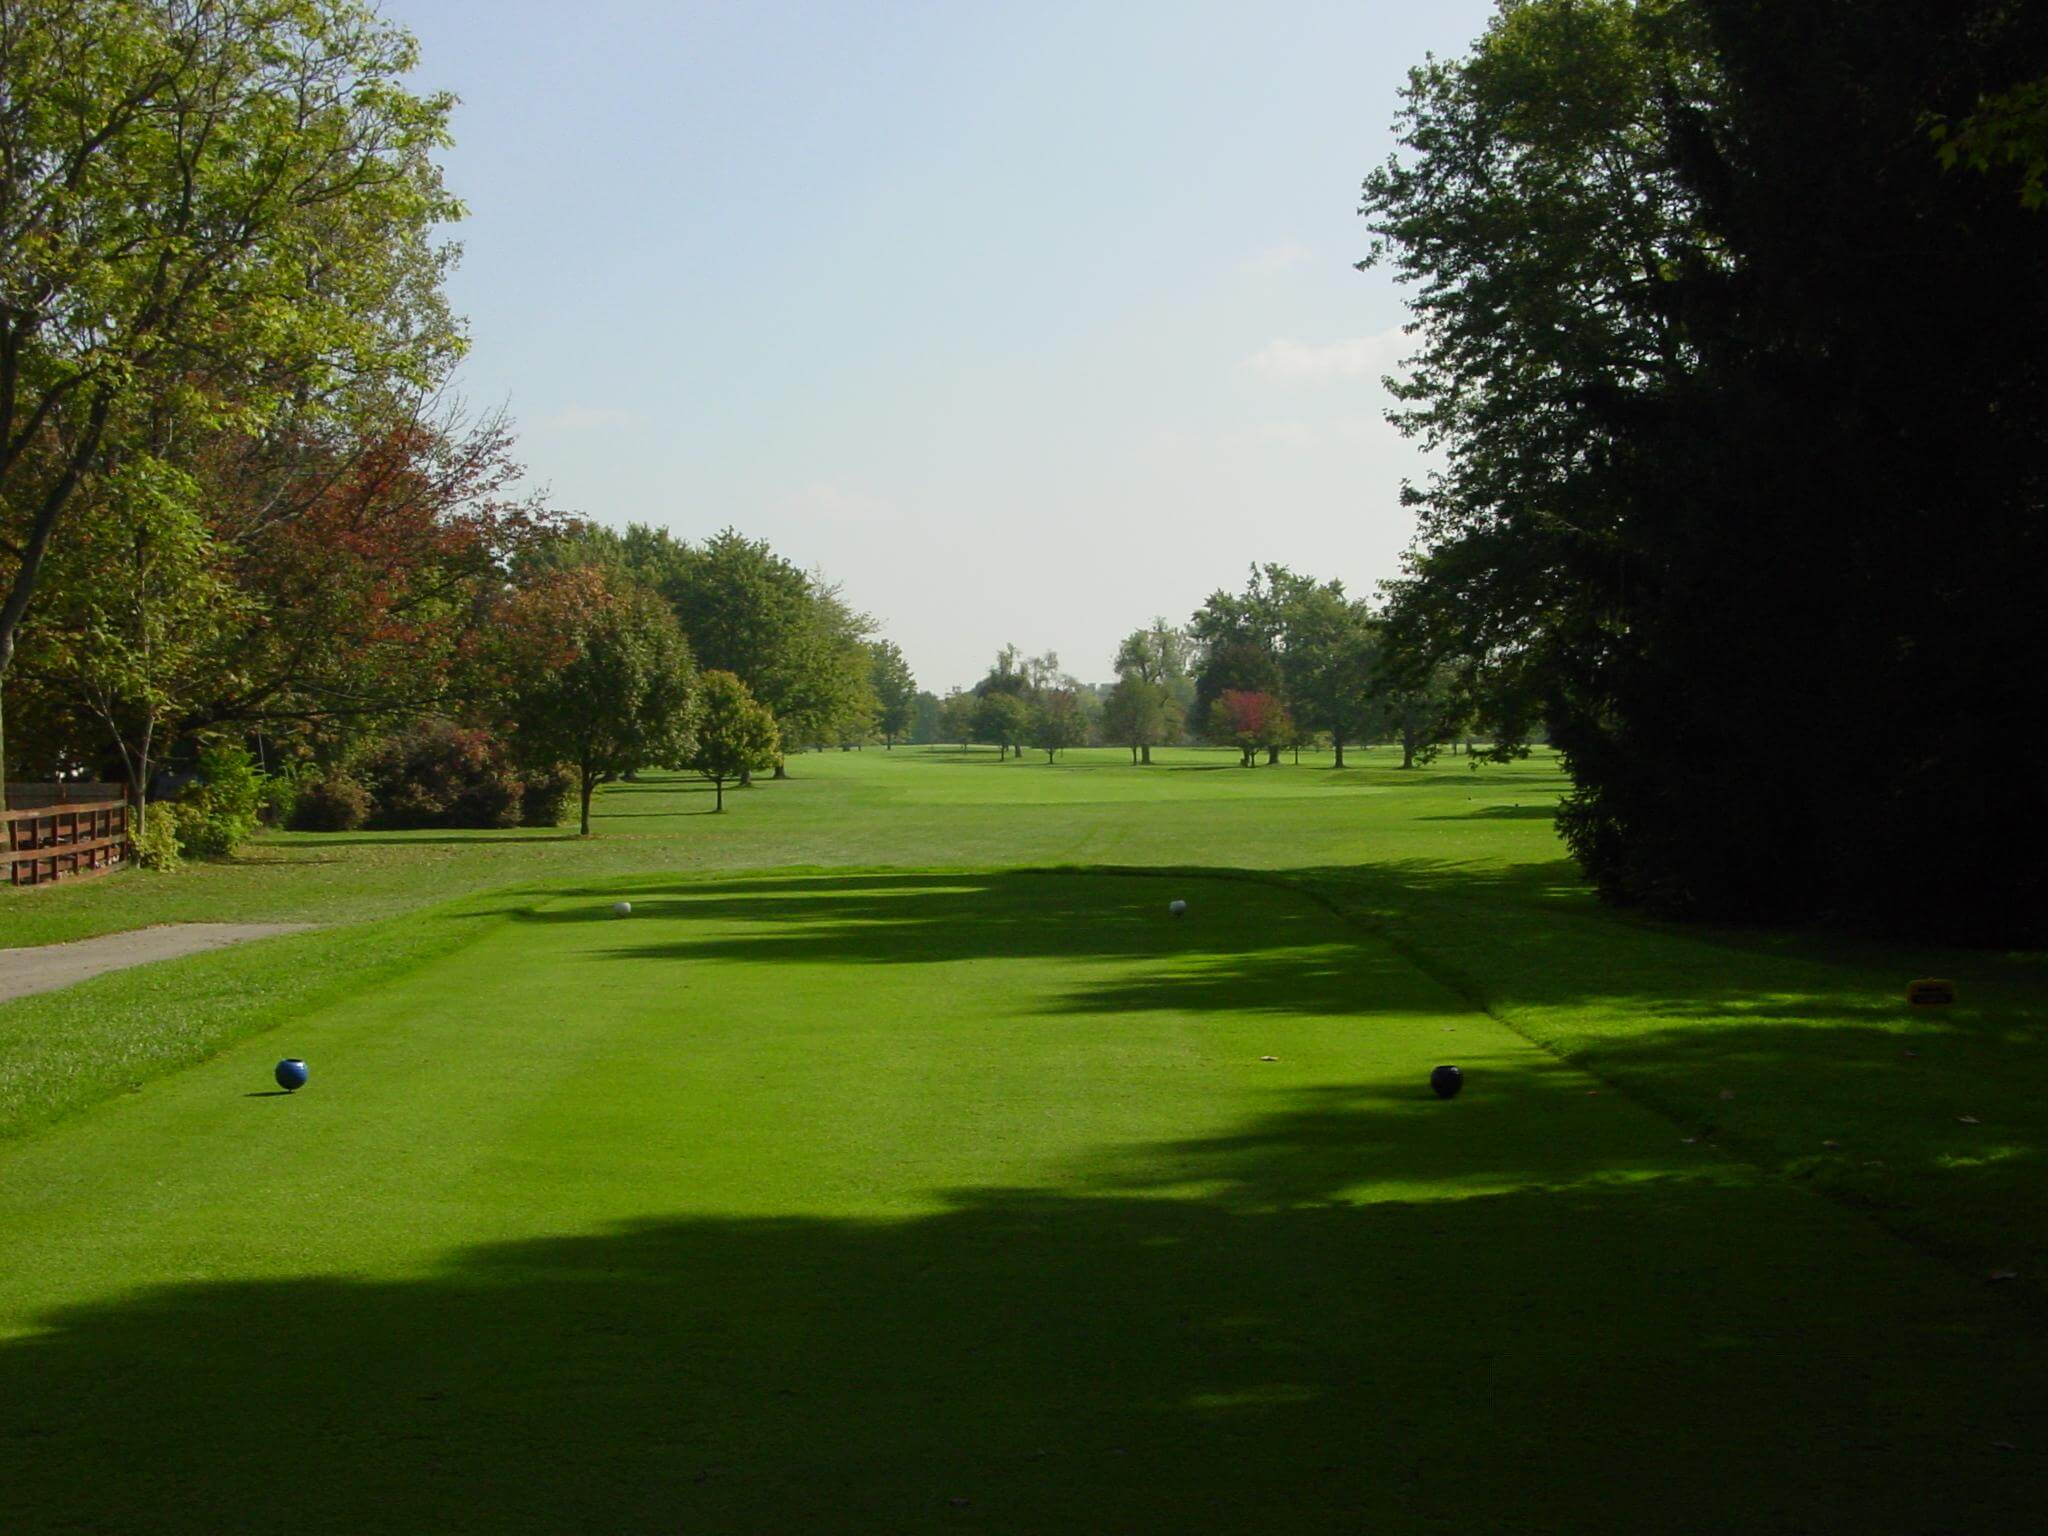 Hole 16 on the golf course